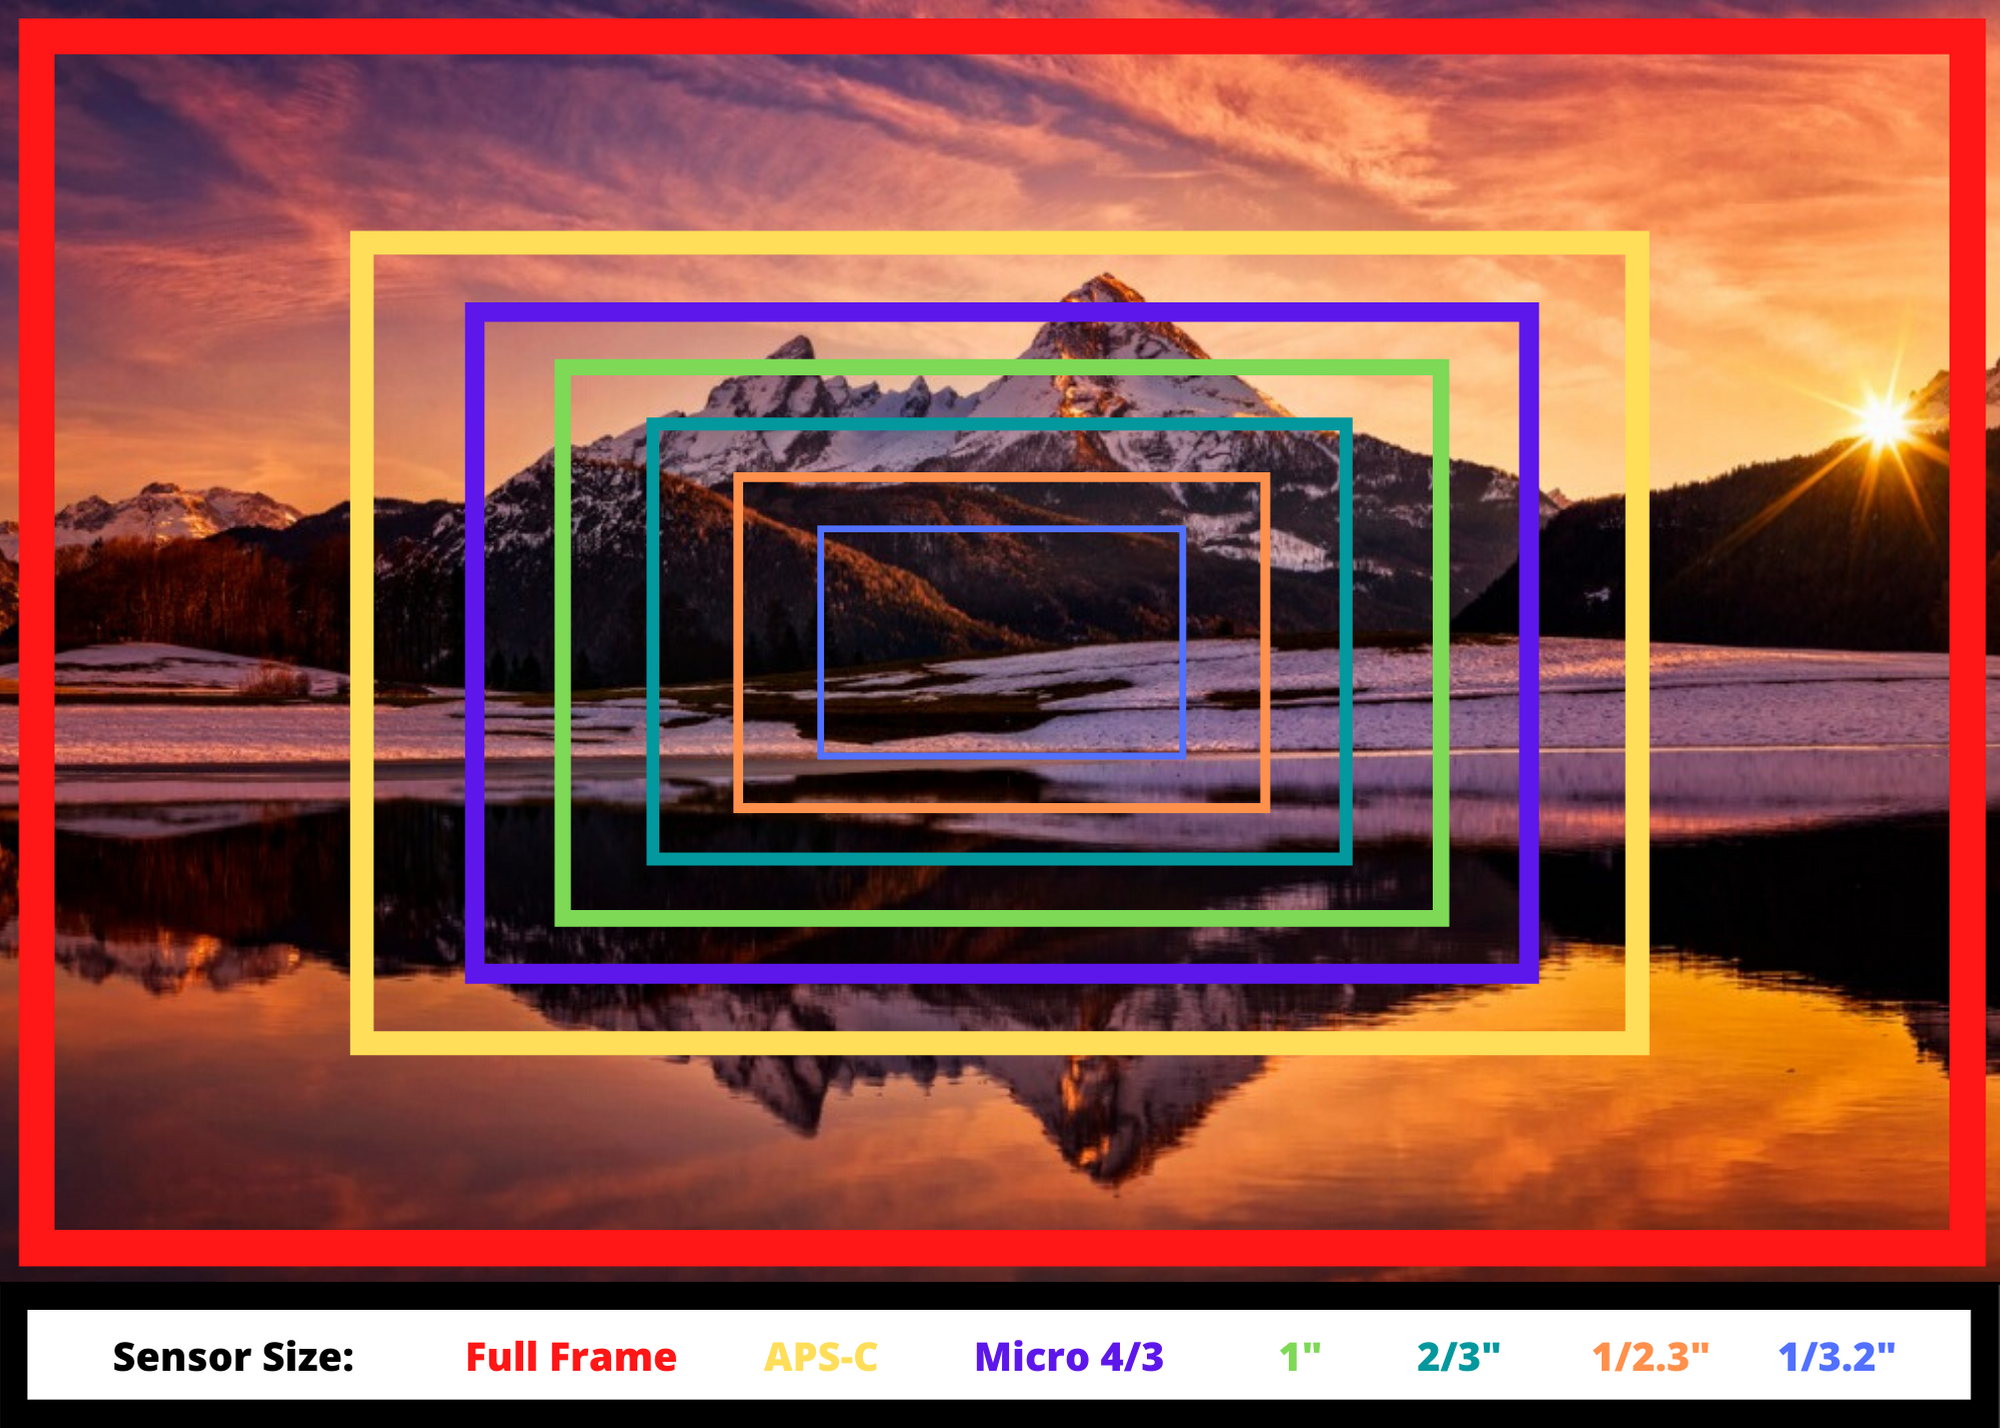 Crop Factor and Sensor Size image